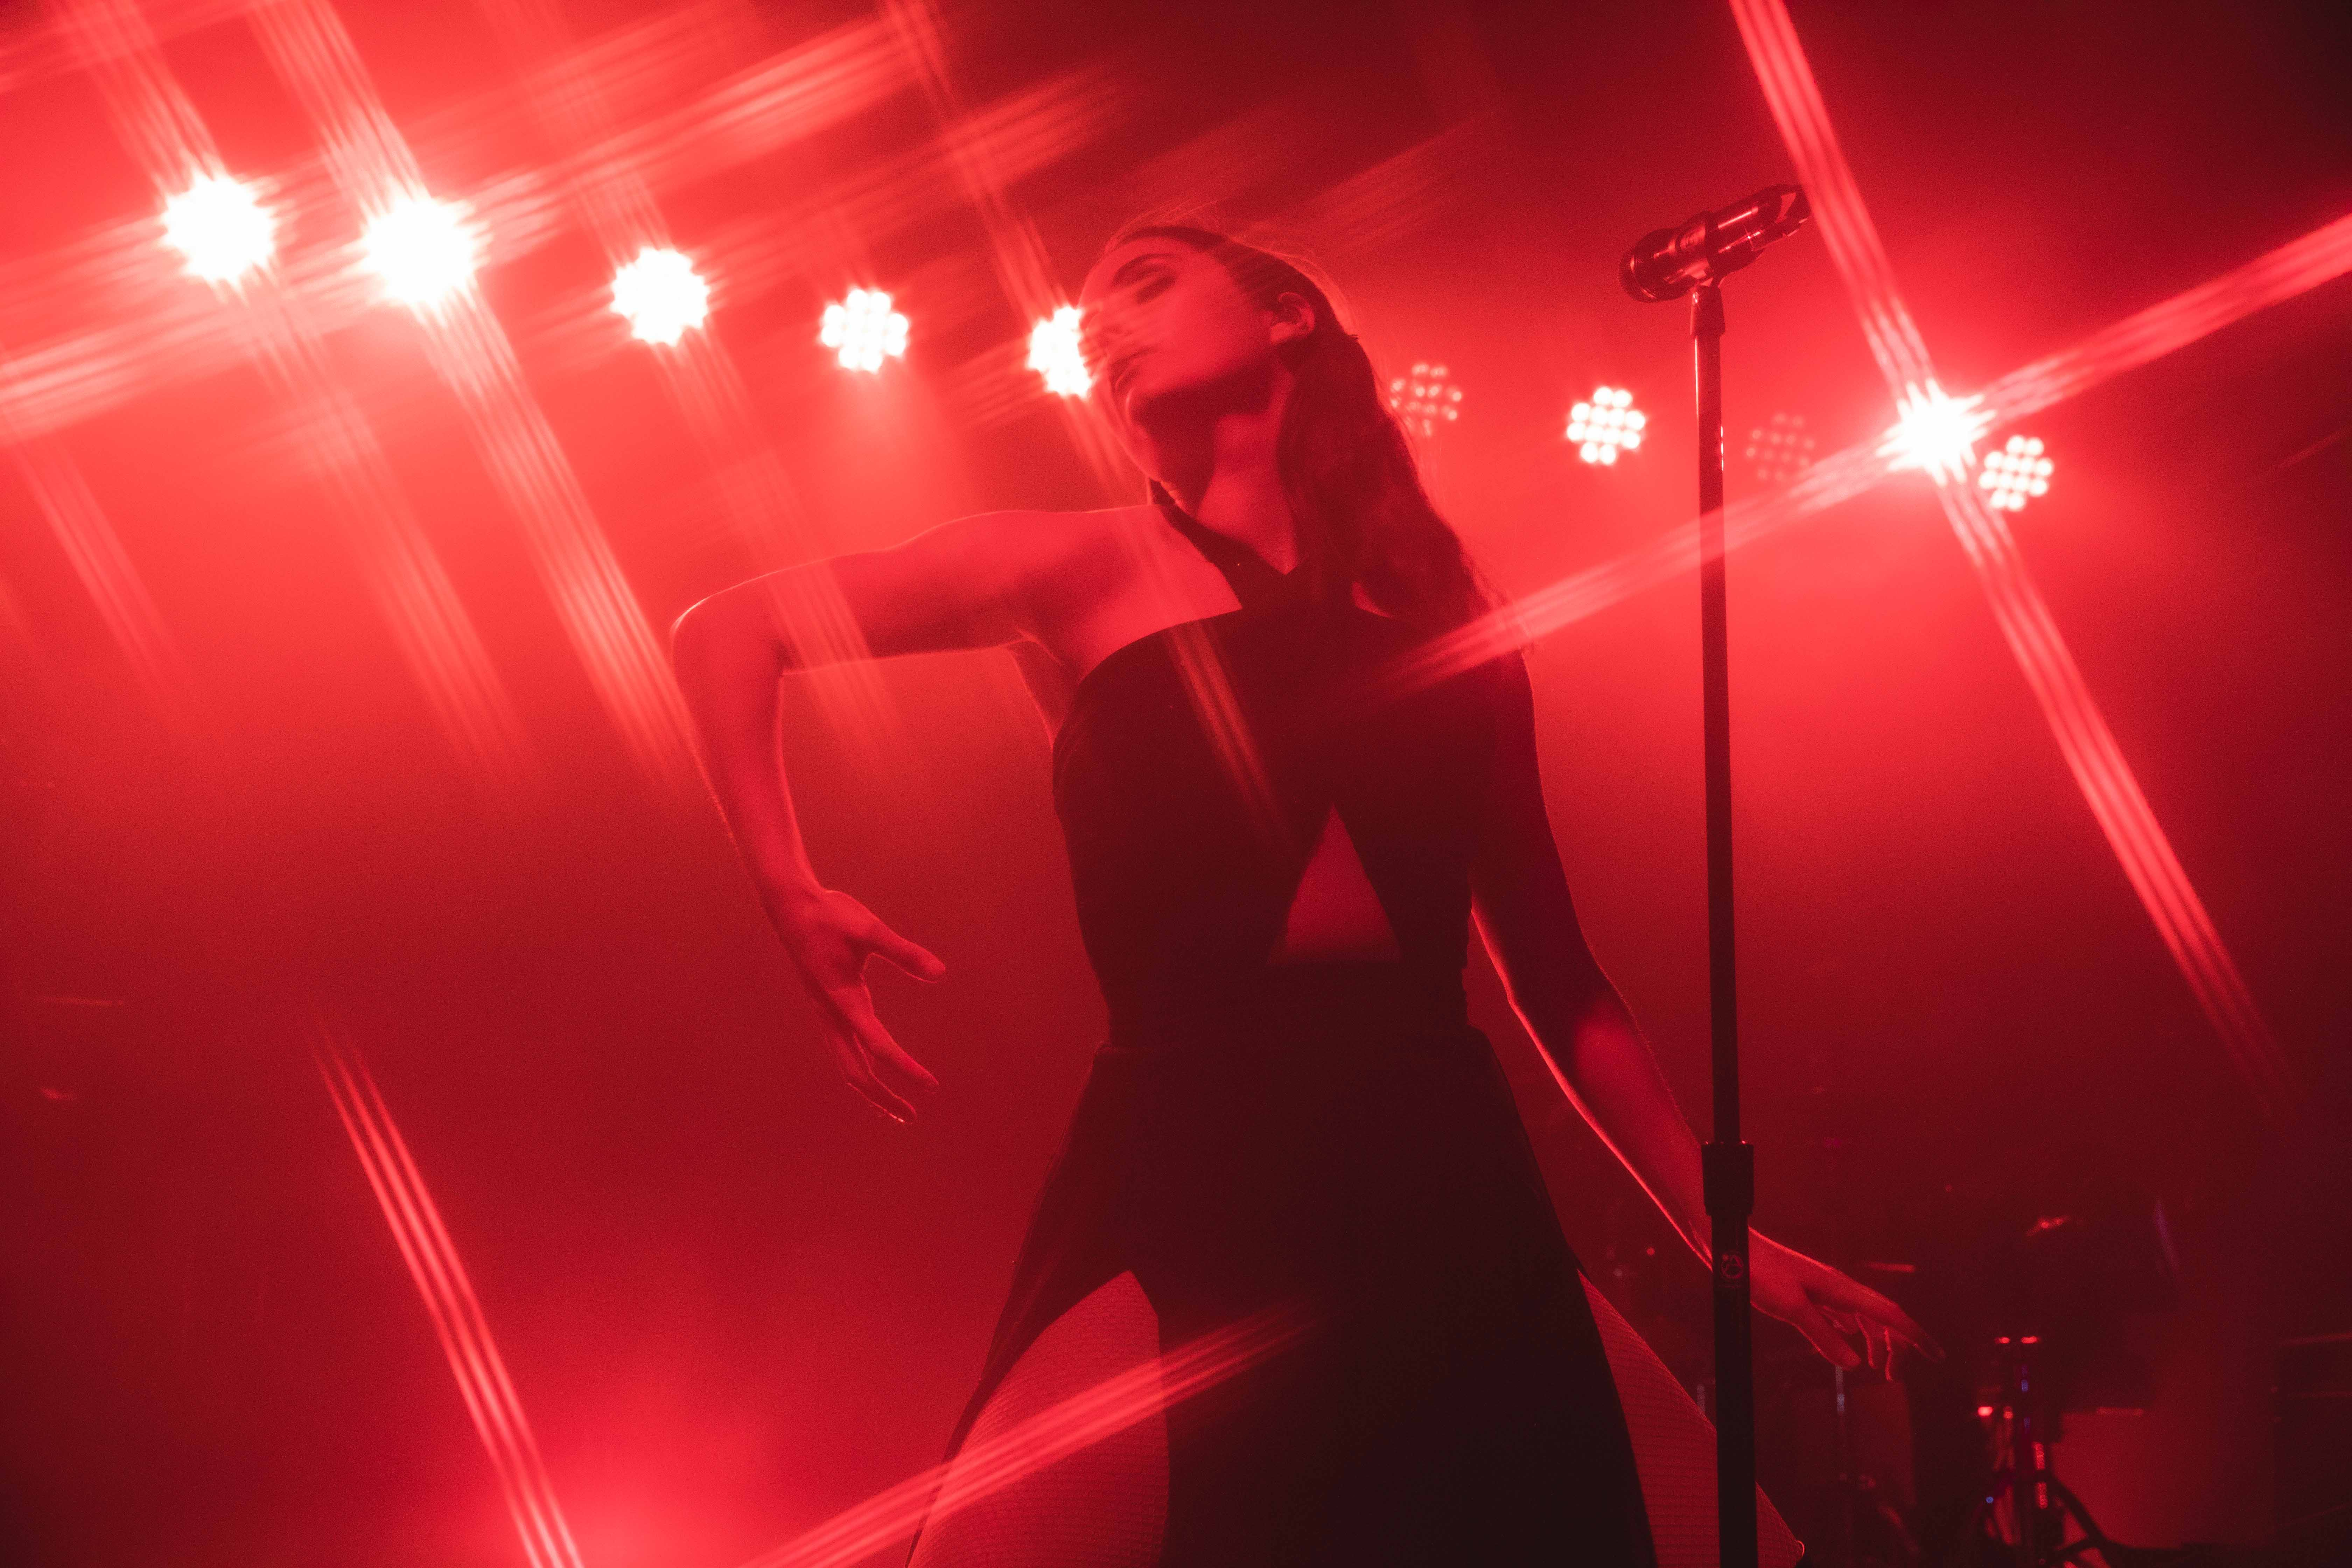 REVIEW: BANKS throws a red-hot party at the House of Vans